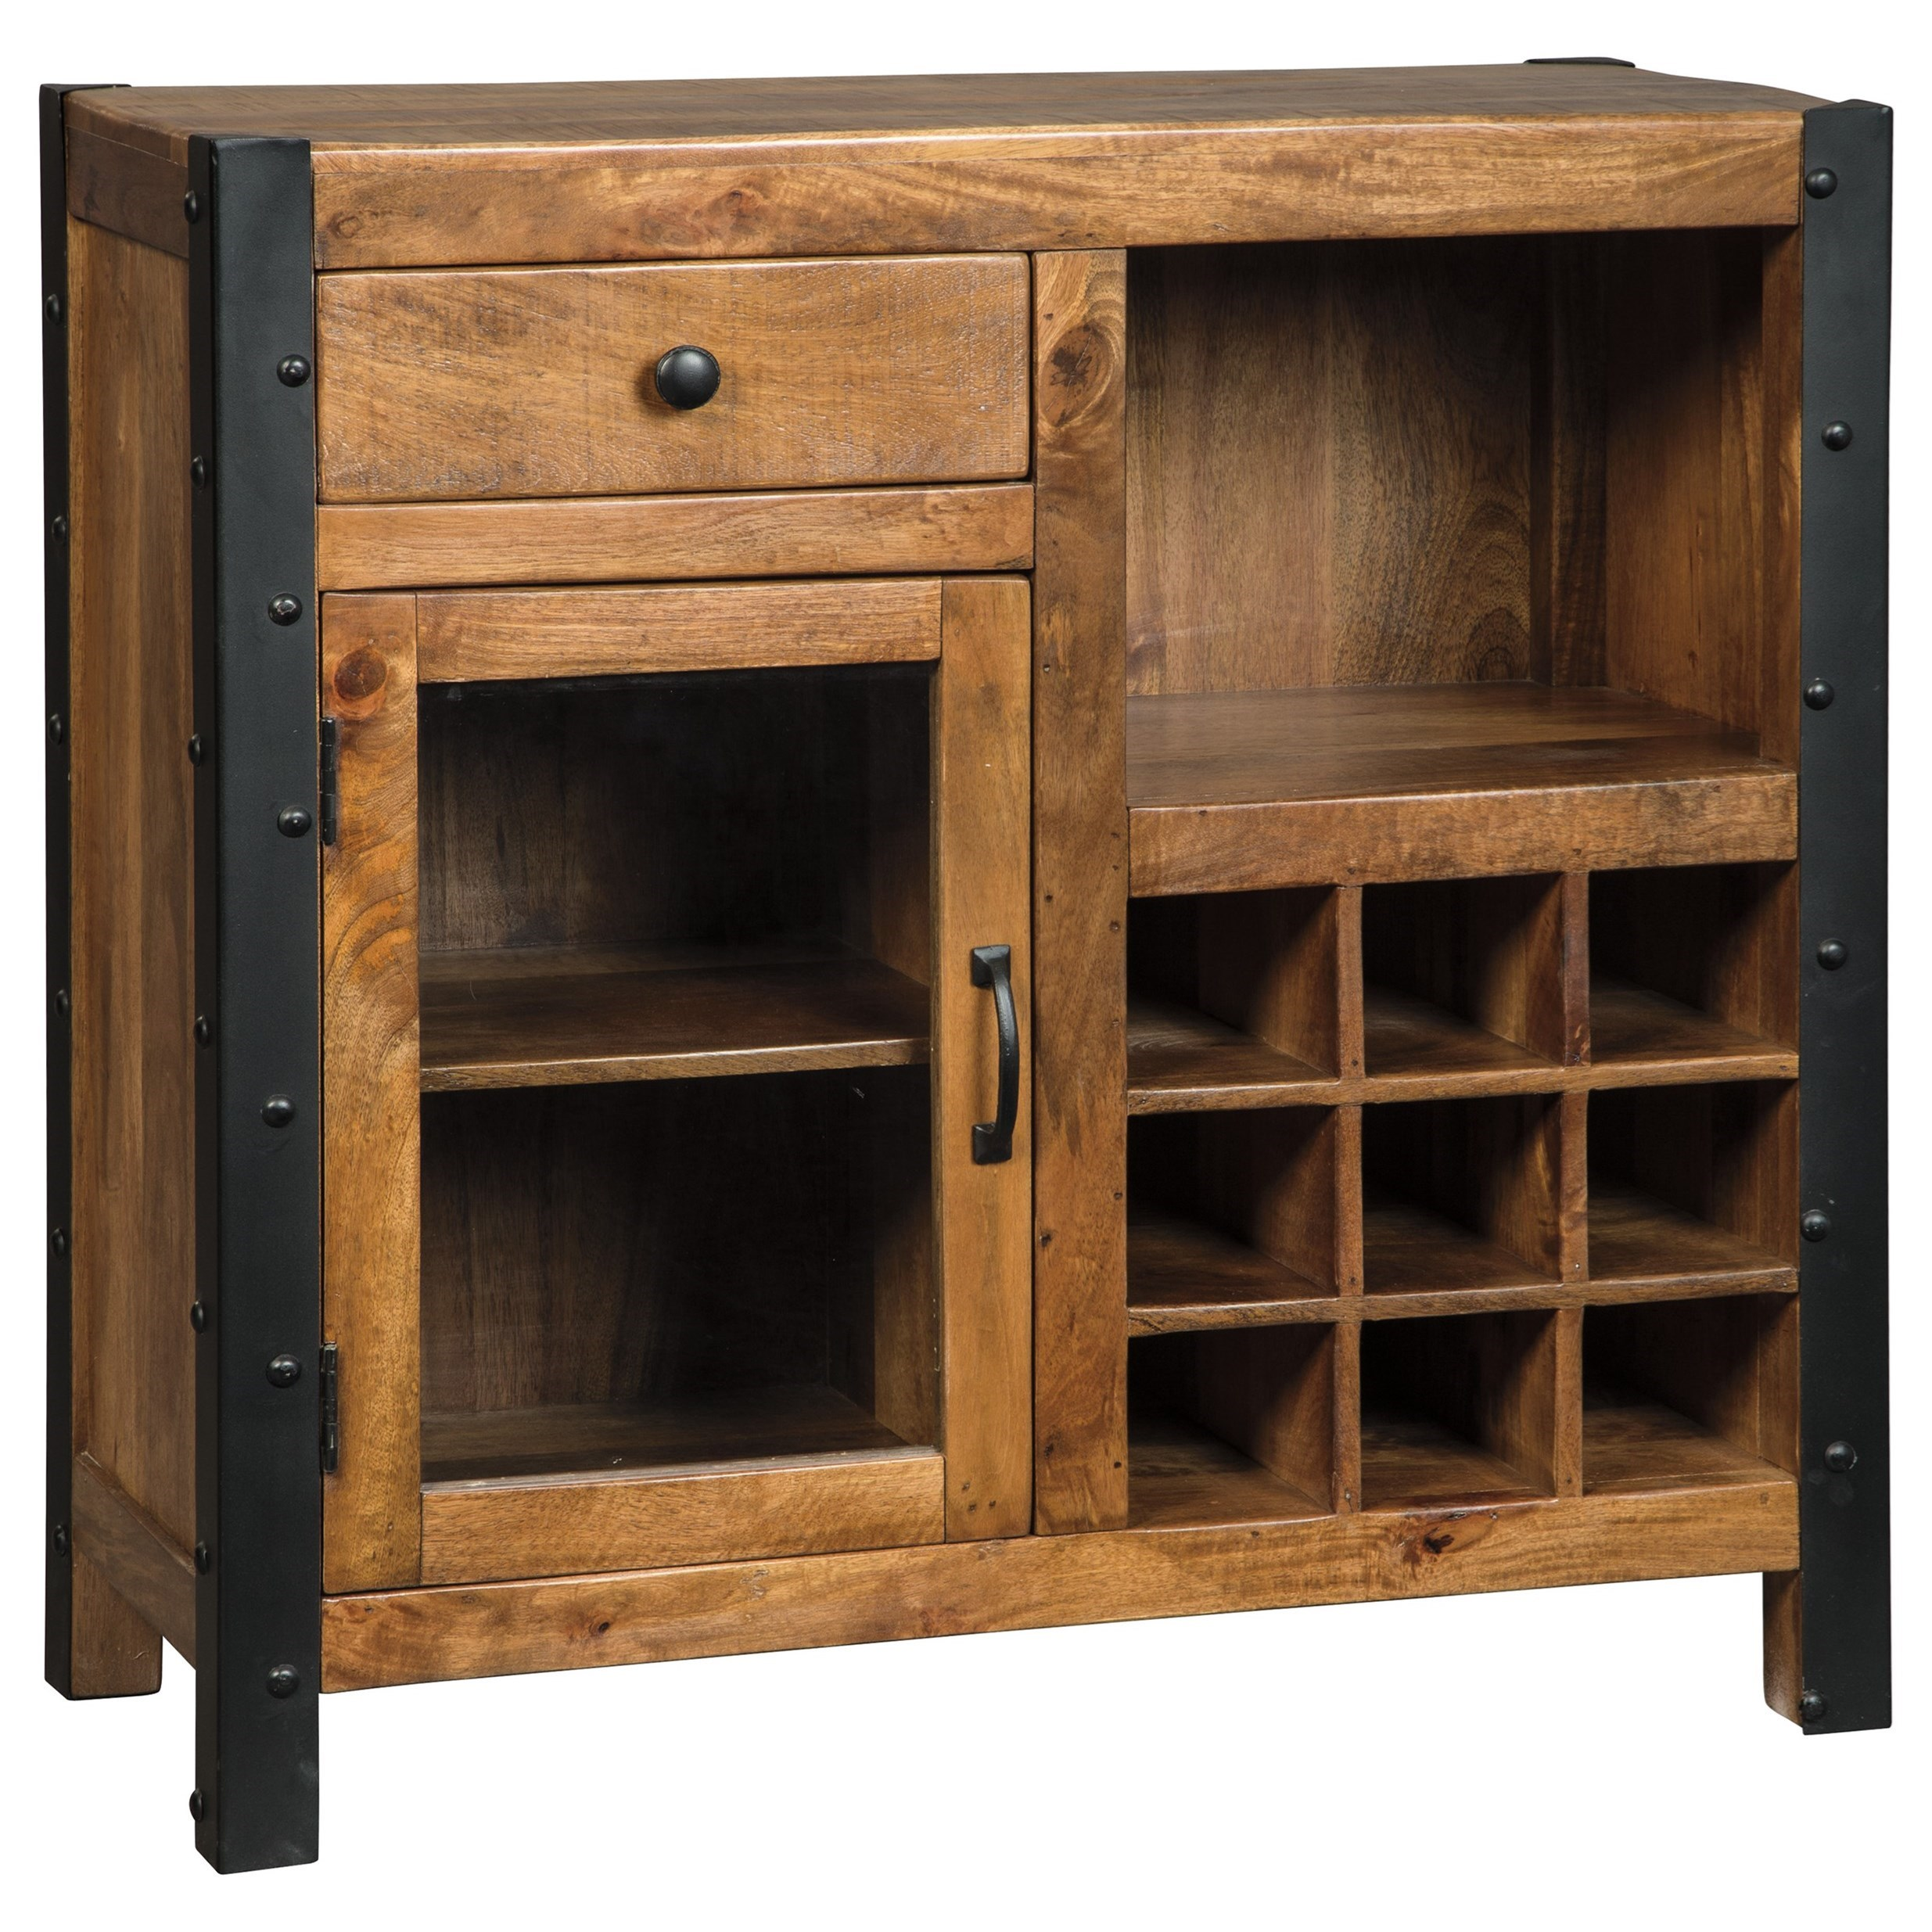 Signature Design By Ashley Glosco Solid Wood Mango Wine Cabinet With Industrial Metal Accents